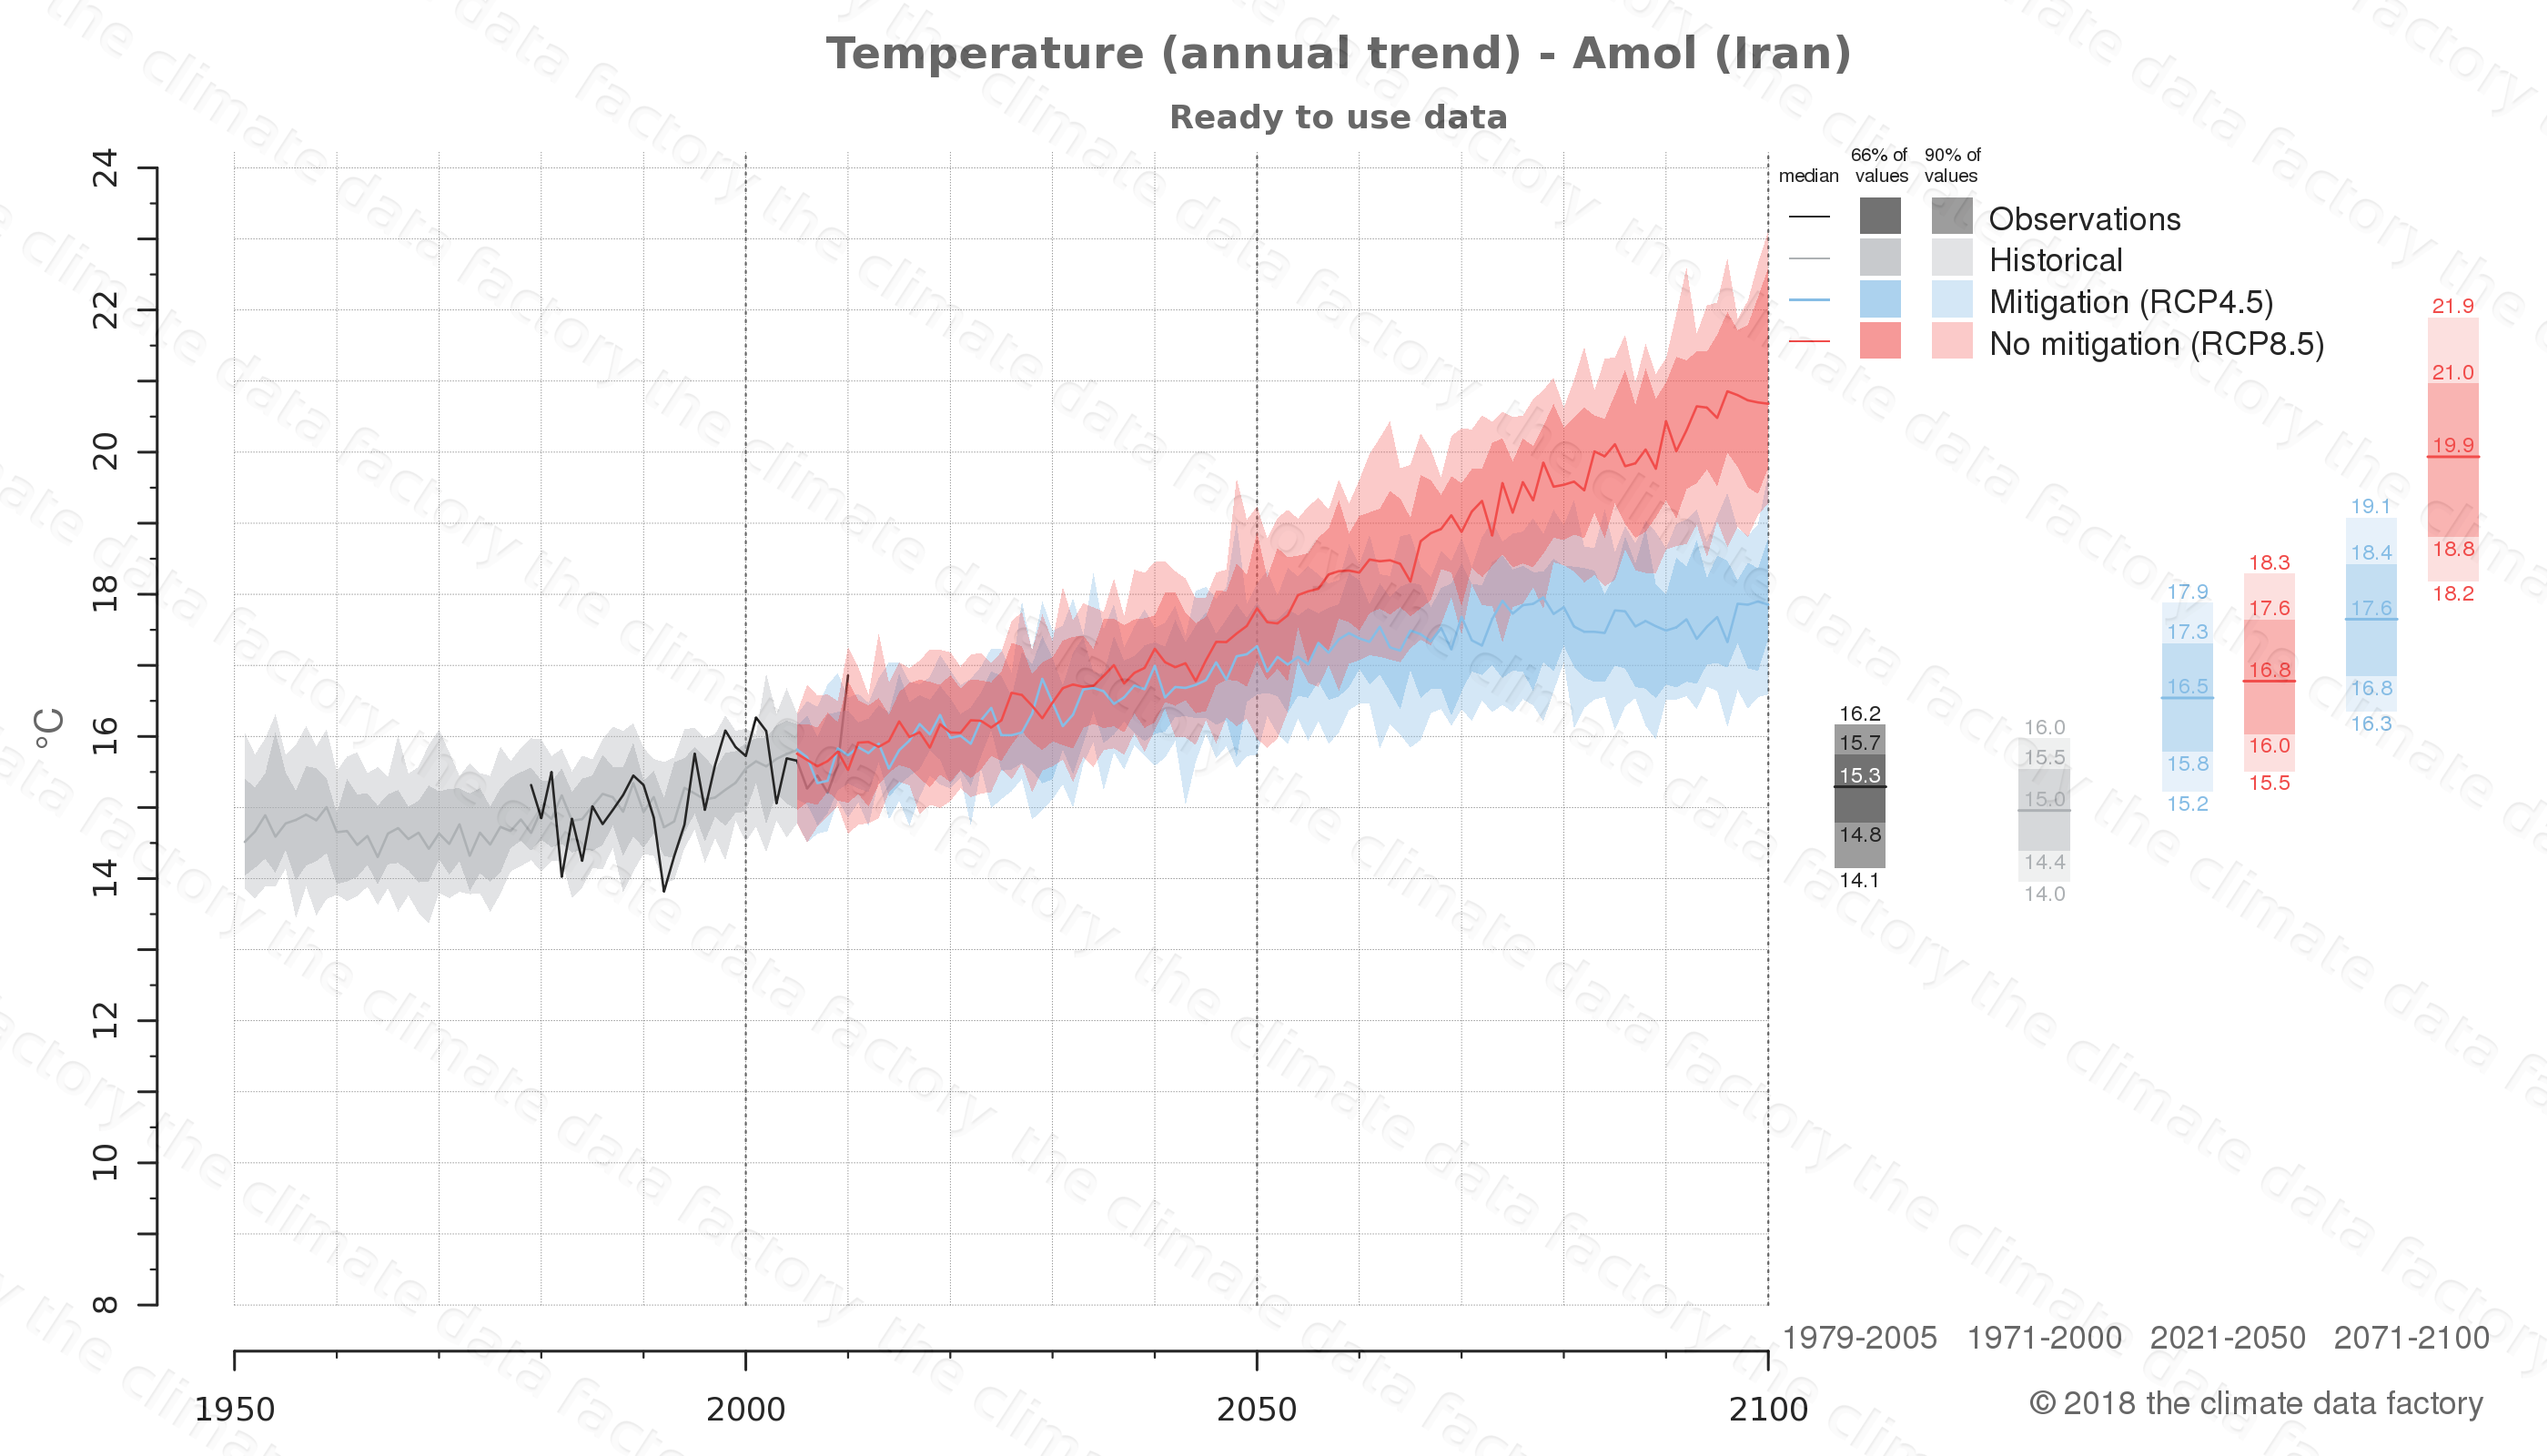 climate change data policy adaptation climate graph city data temperature amol iran